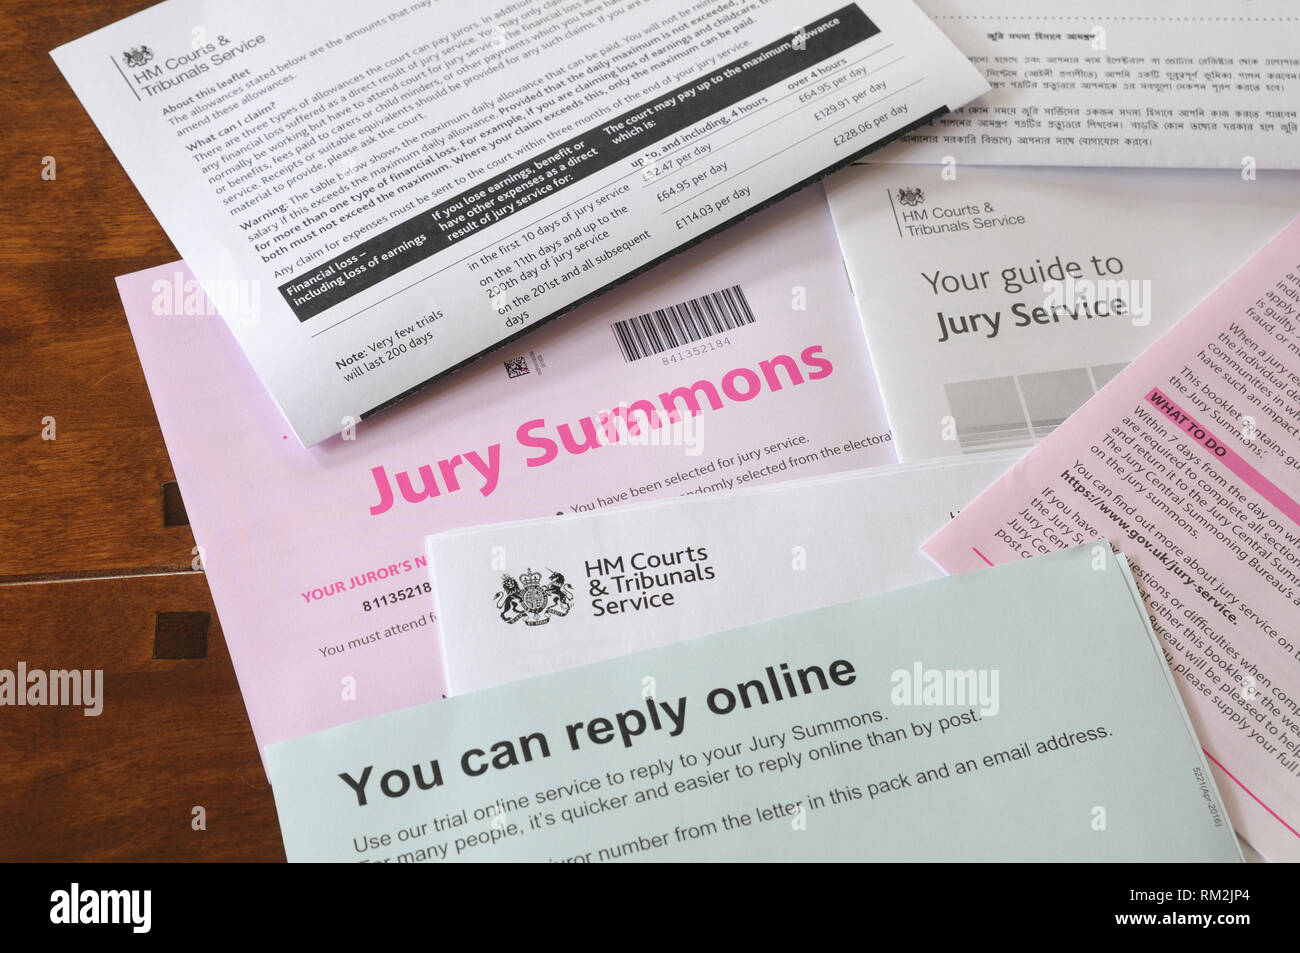 Jury Summons letter with general information forms, England, UK - Stock Image